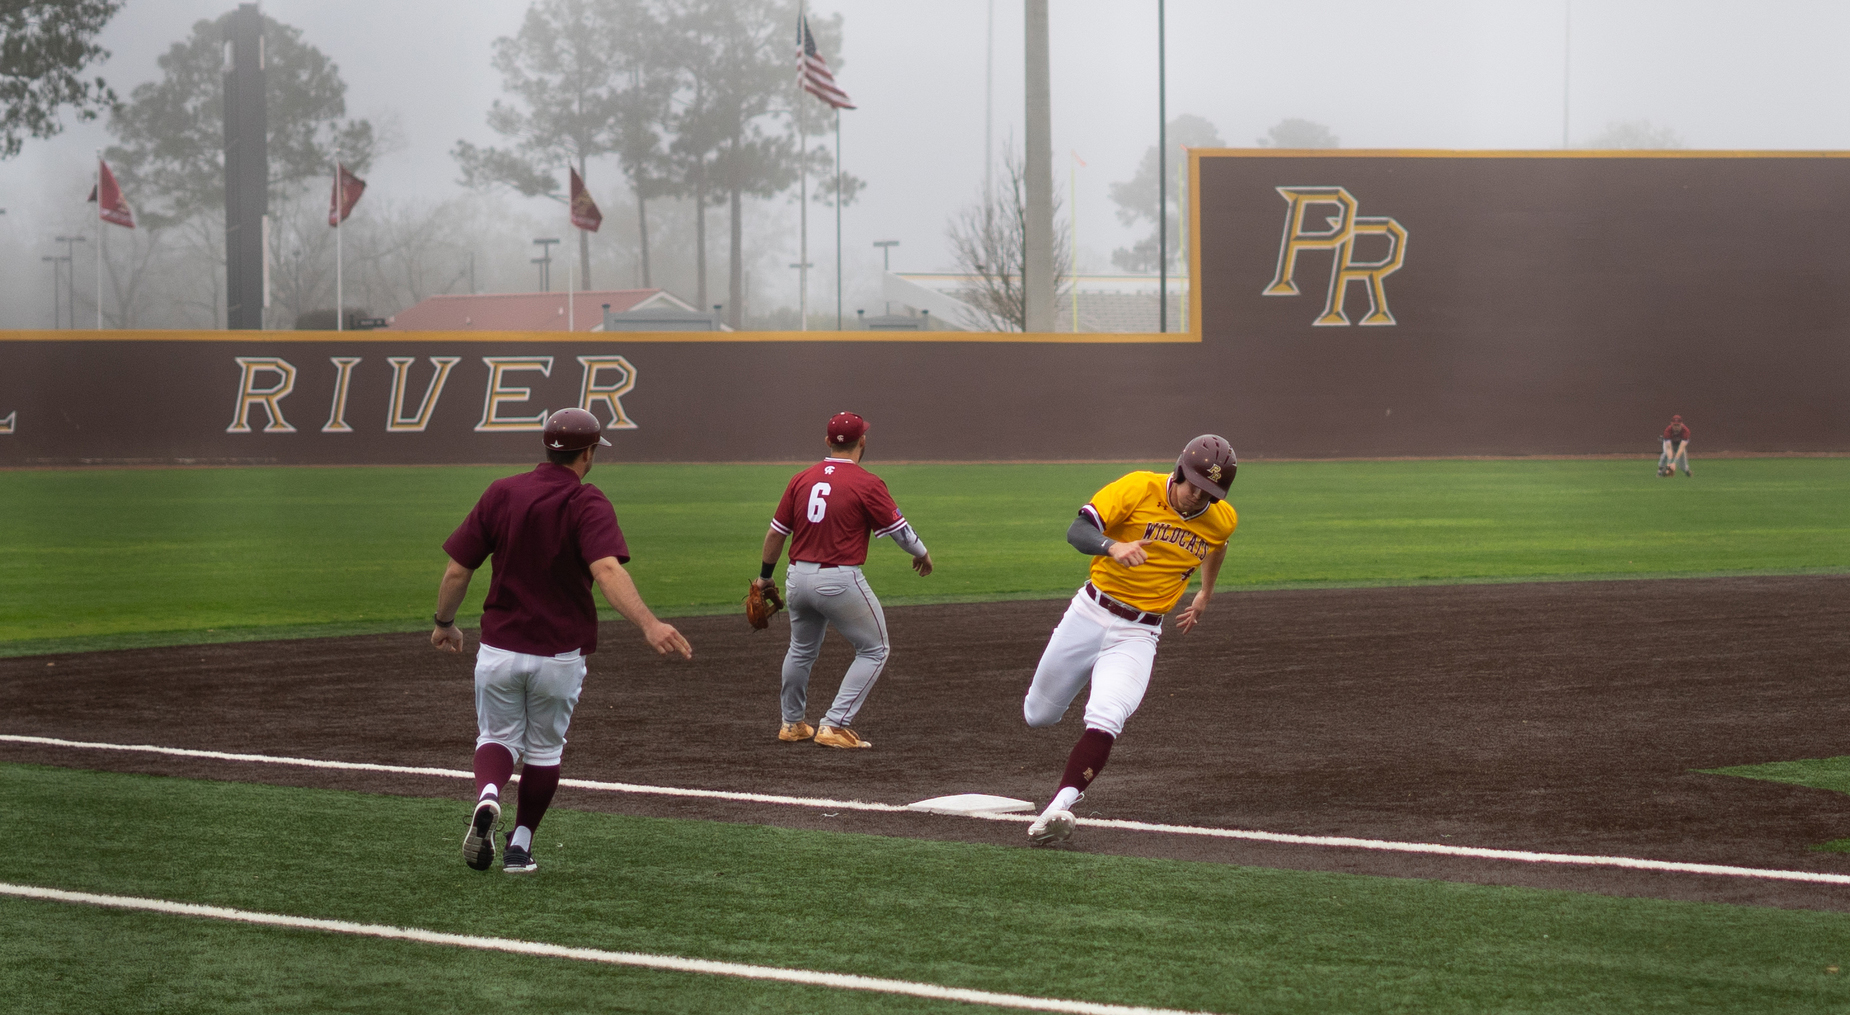 Pearl River baseball adds switch-hitting slugger from Wake Forest